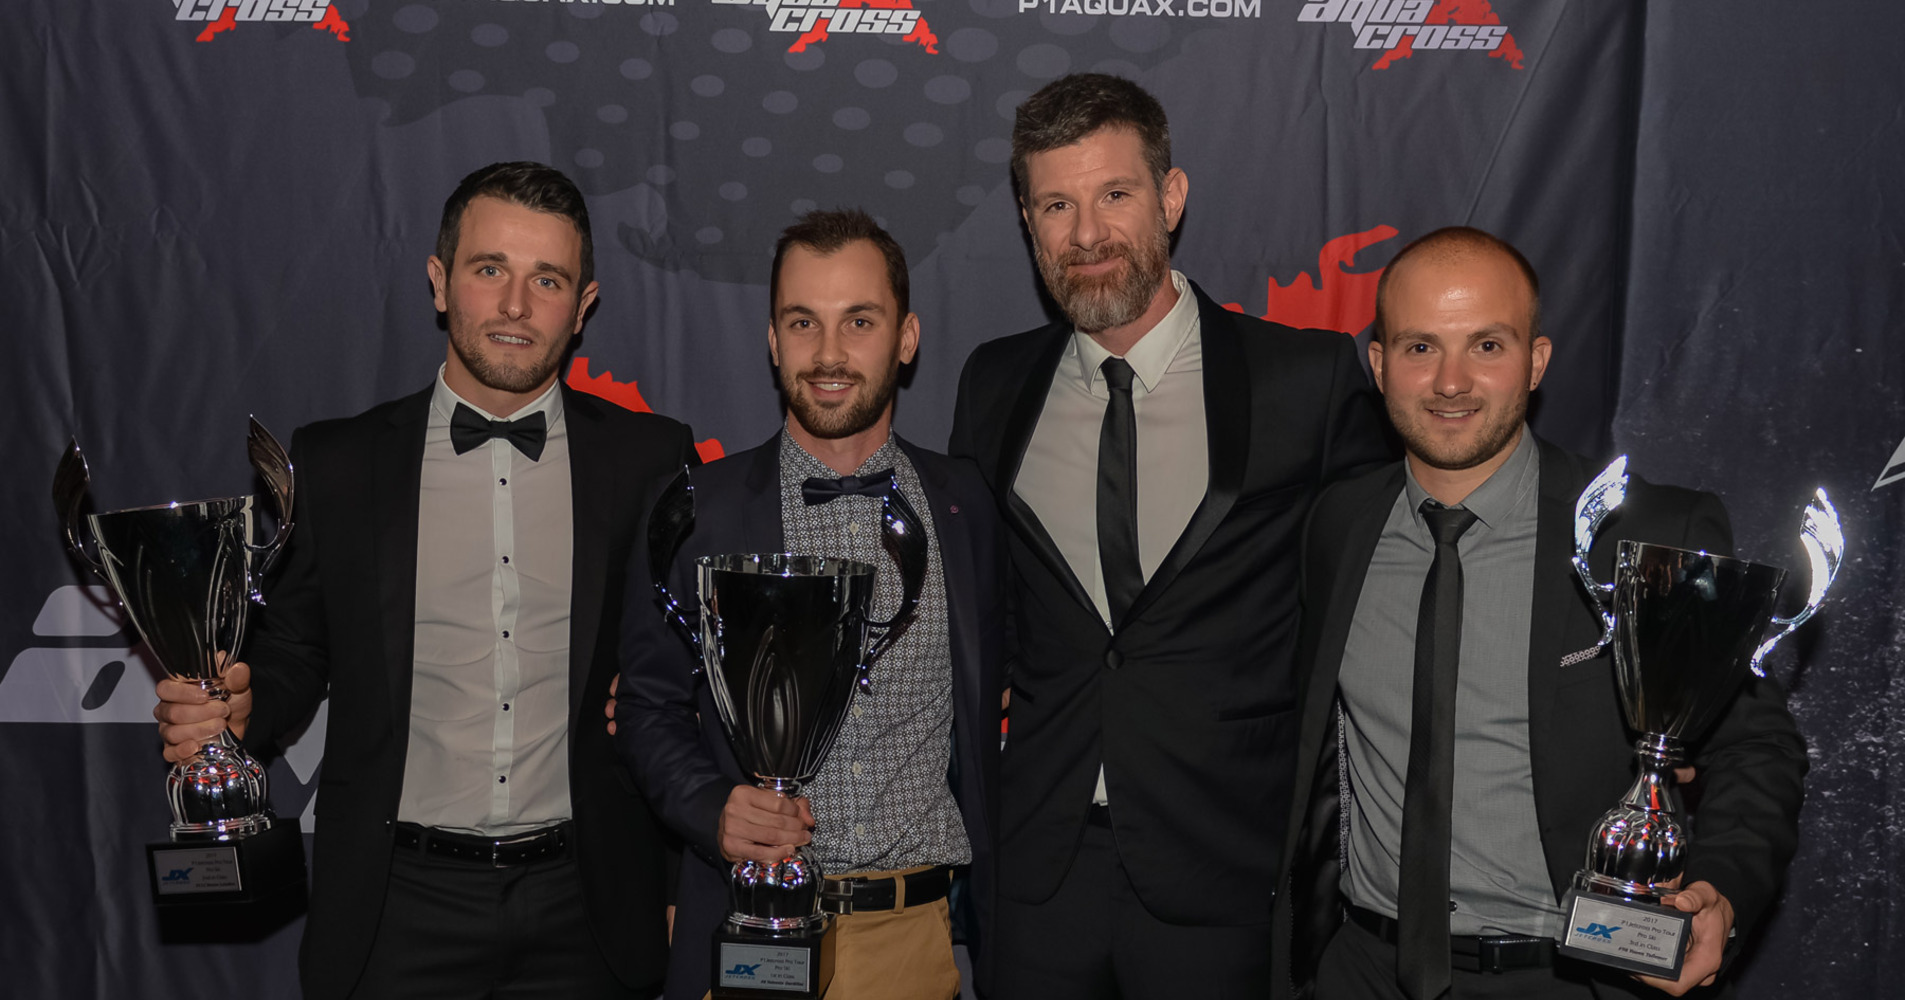 P1 Awards ceremony in London celebrates Jetcross Pro World Tour Champions - Left to Right : Steven Loiodice - Valentin Dardillat - Julien Bastien (P1 Jetcross manager) - Yoann Tollemer